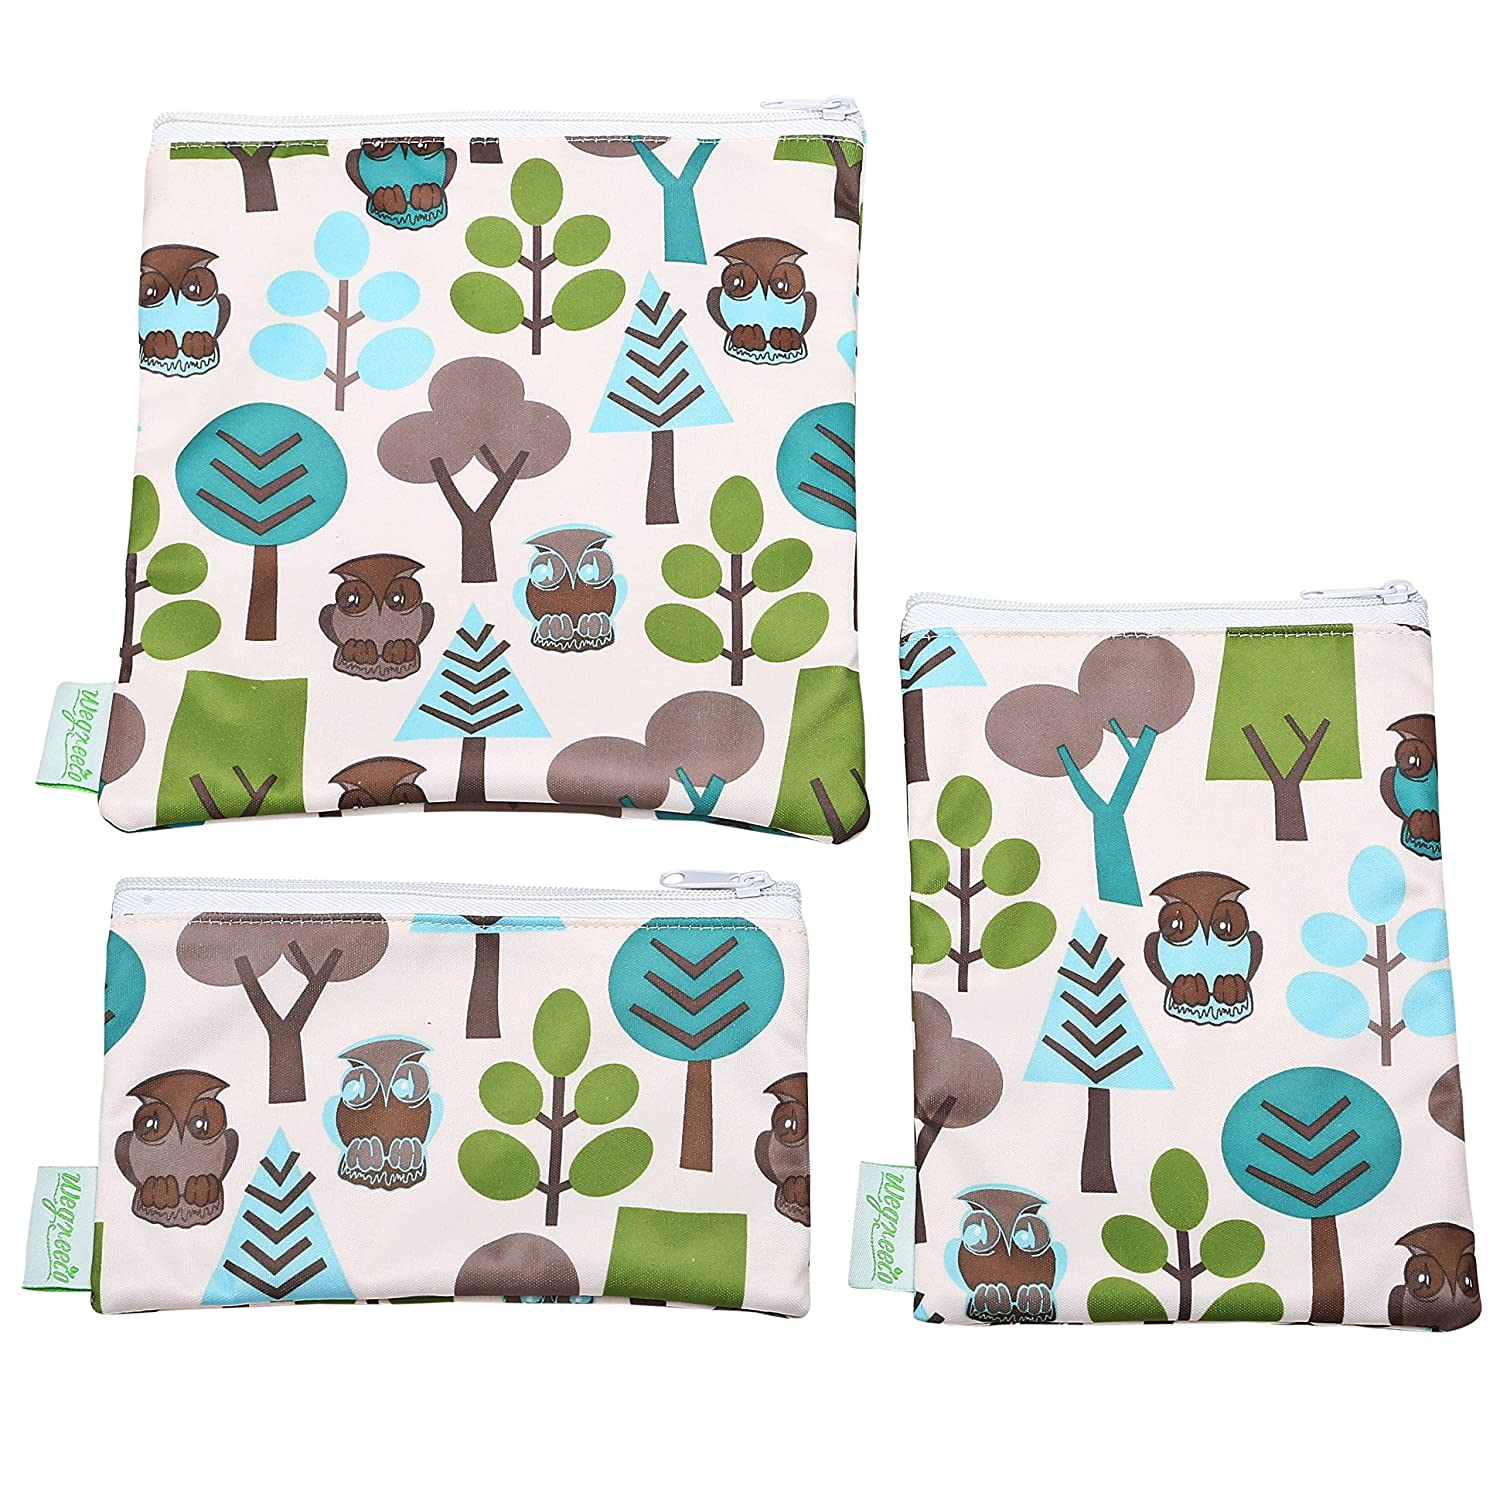 Wegreeco Reusable Sandwich & Snack Bags - Set of 3 - (Owl)